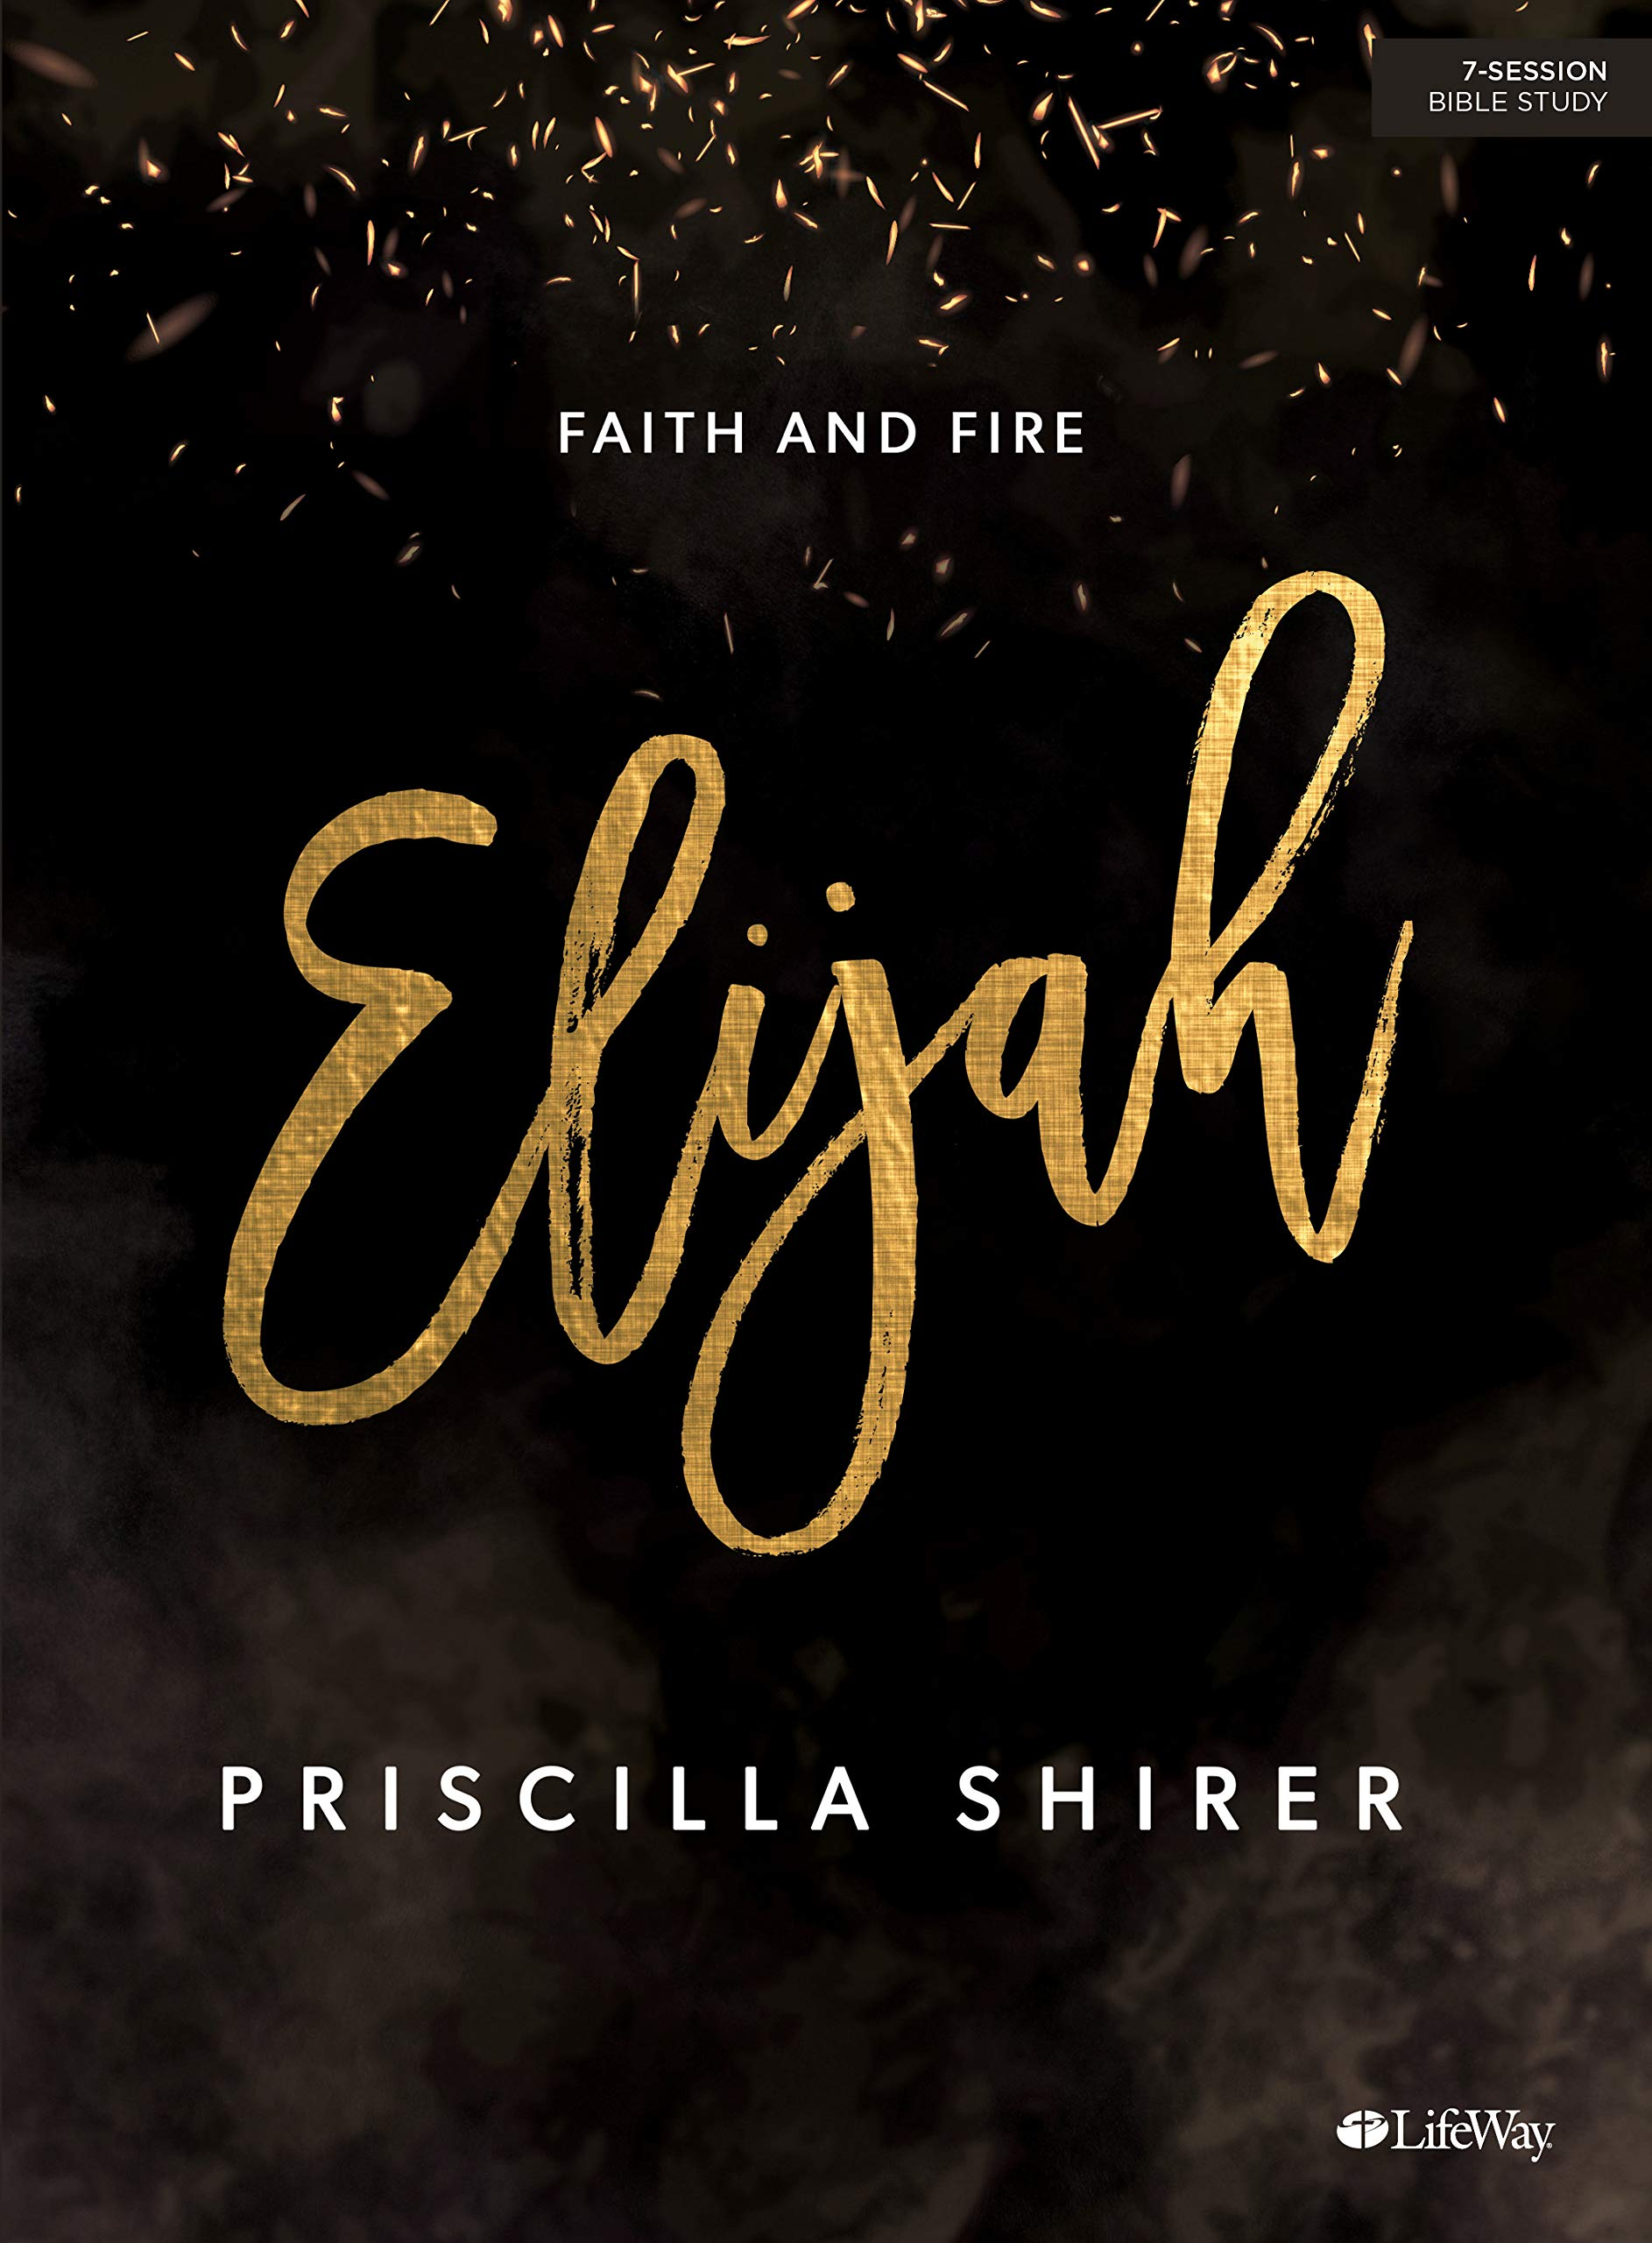 Elijah - Bible Study Book: Faith and Fire